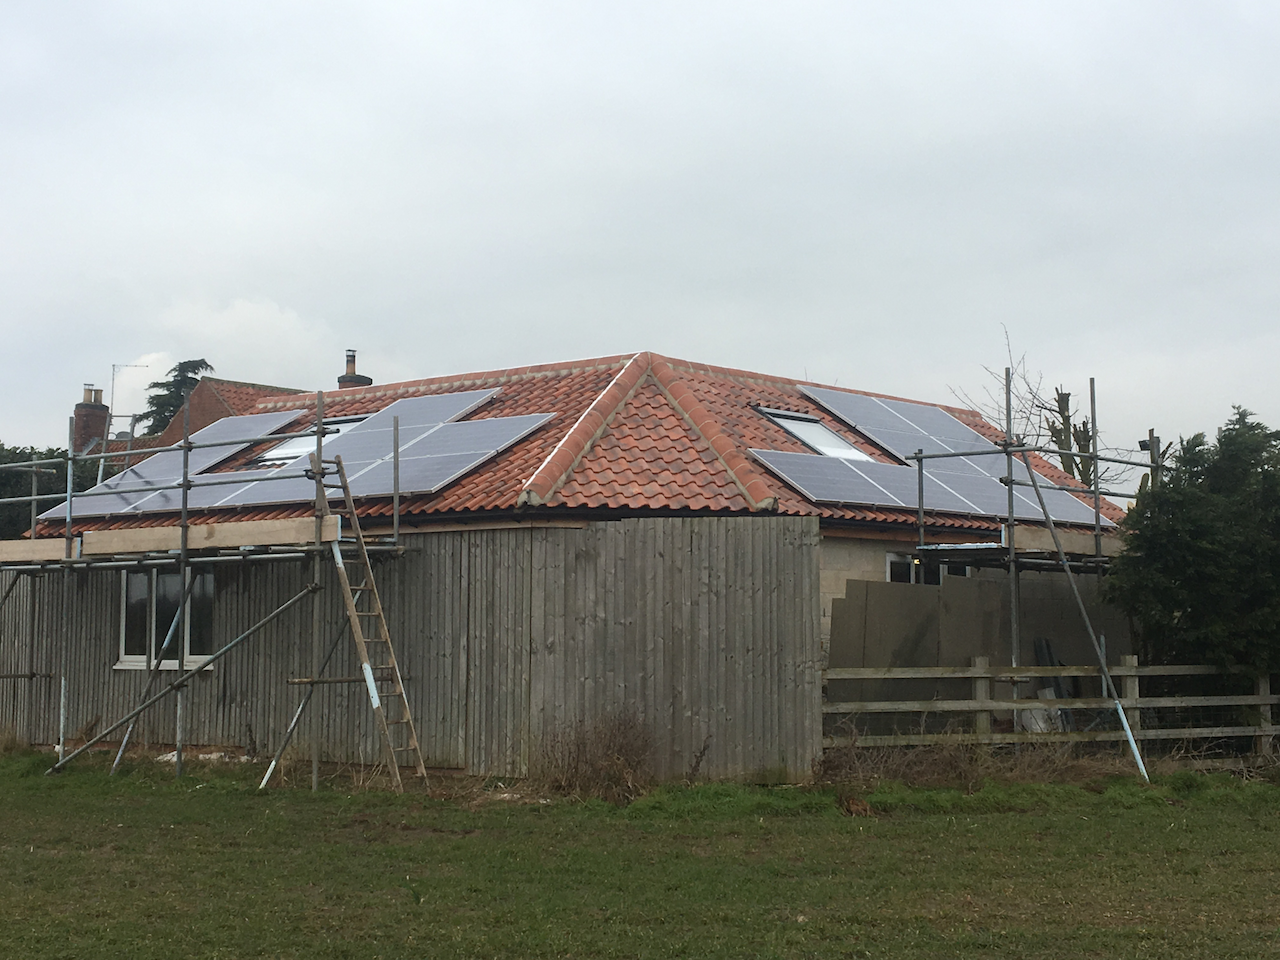 https://www.bluedotroofing.uk/wp-content/uploads/2018/02/Solar-PV-Installtion-South-Clifton-Lincs-4.png